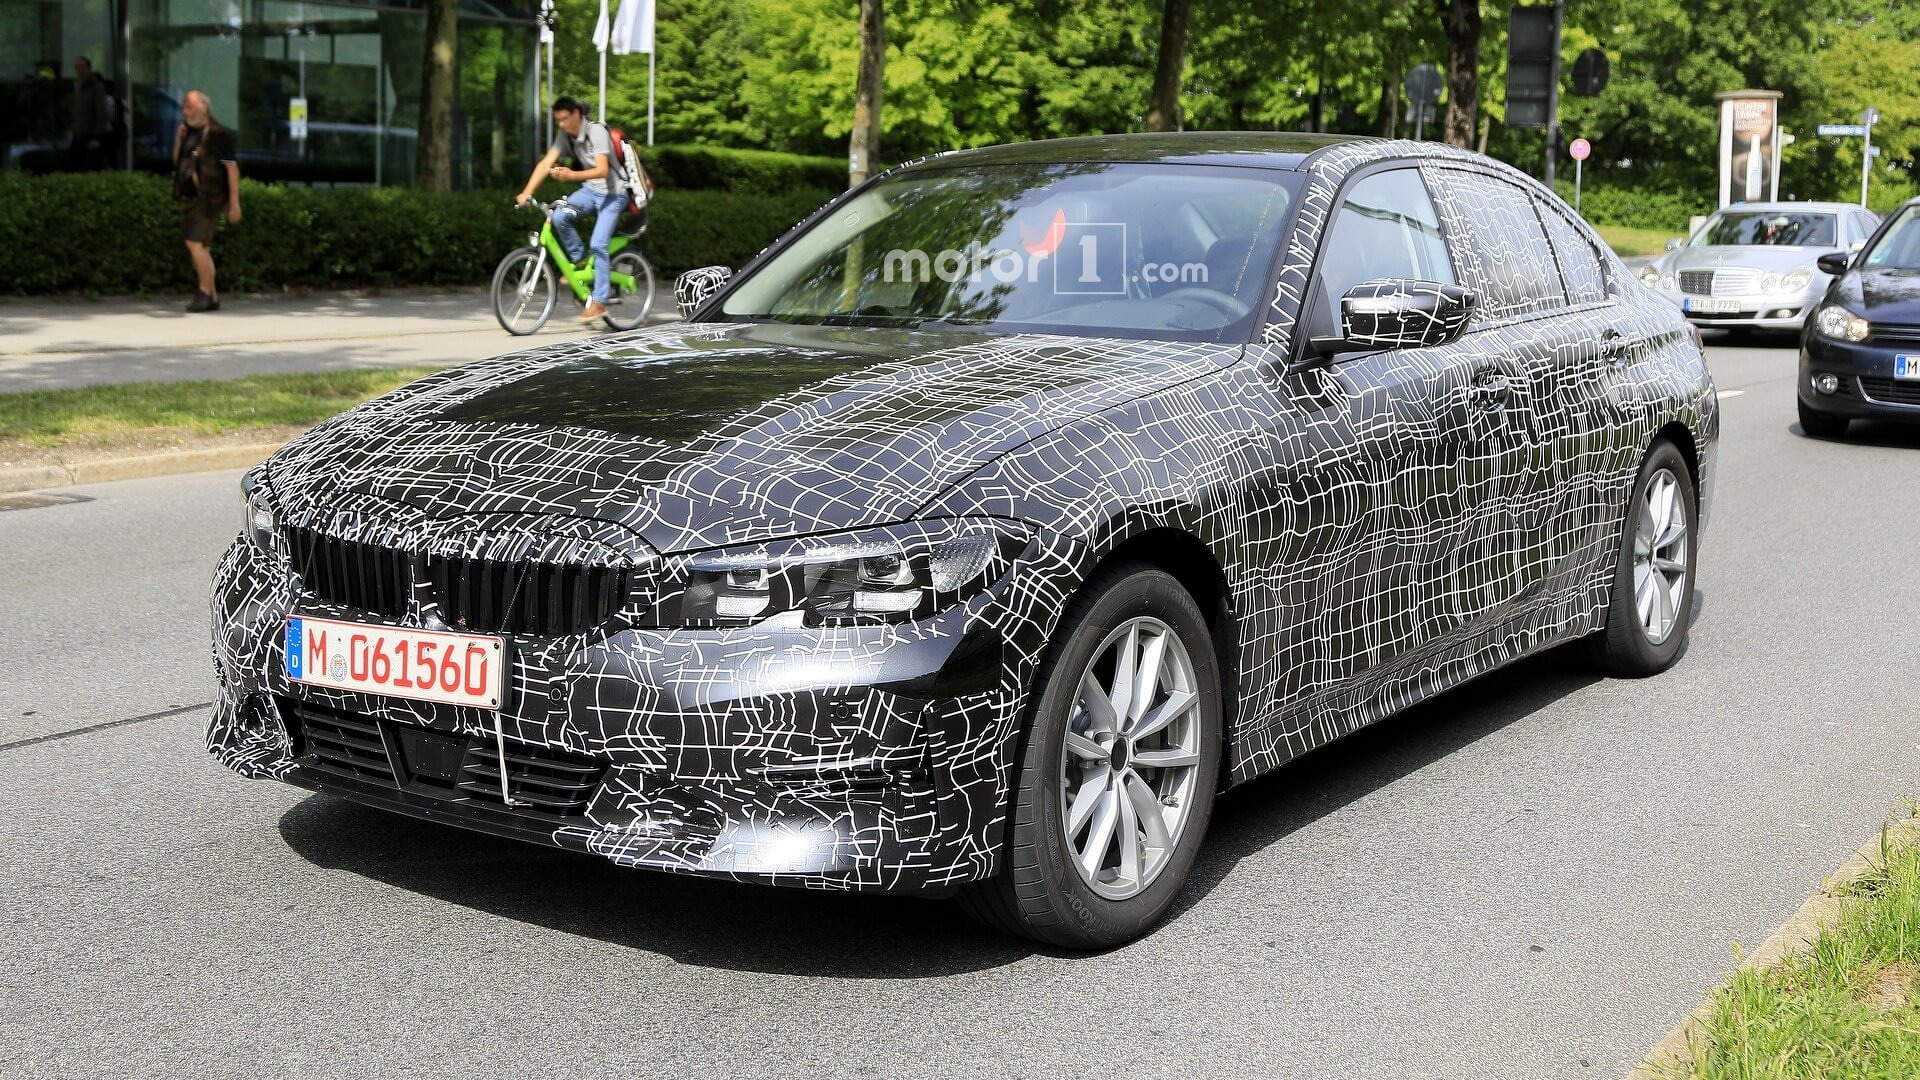 2020 Spy Shots BMW 3 Series Price, Design and Review